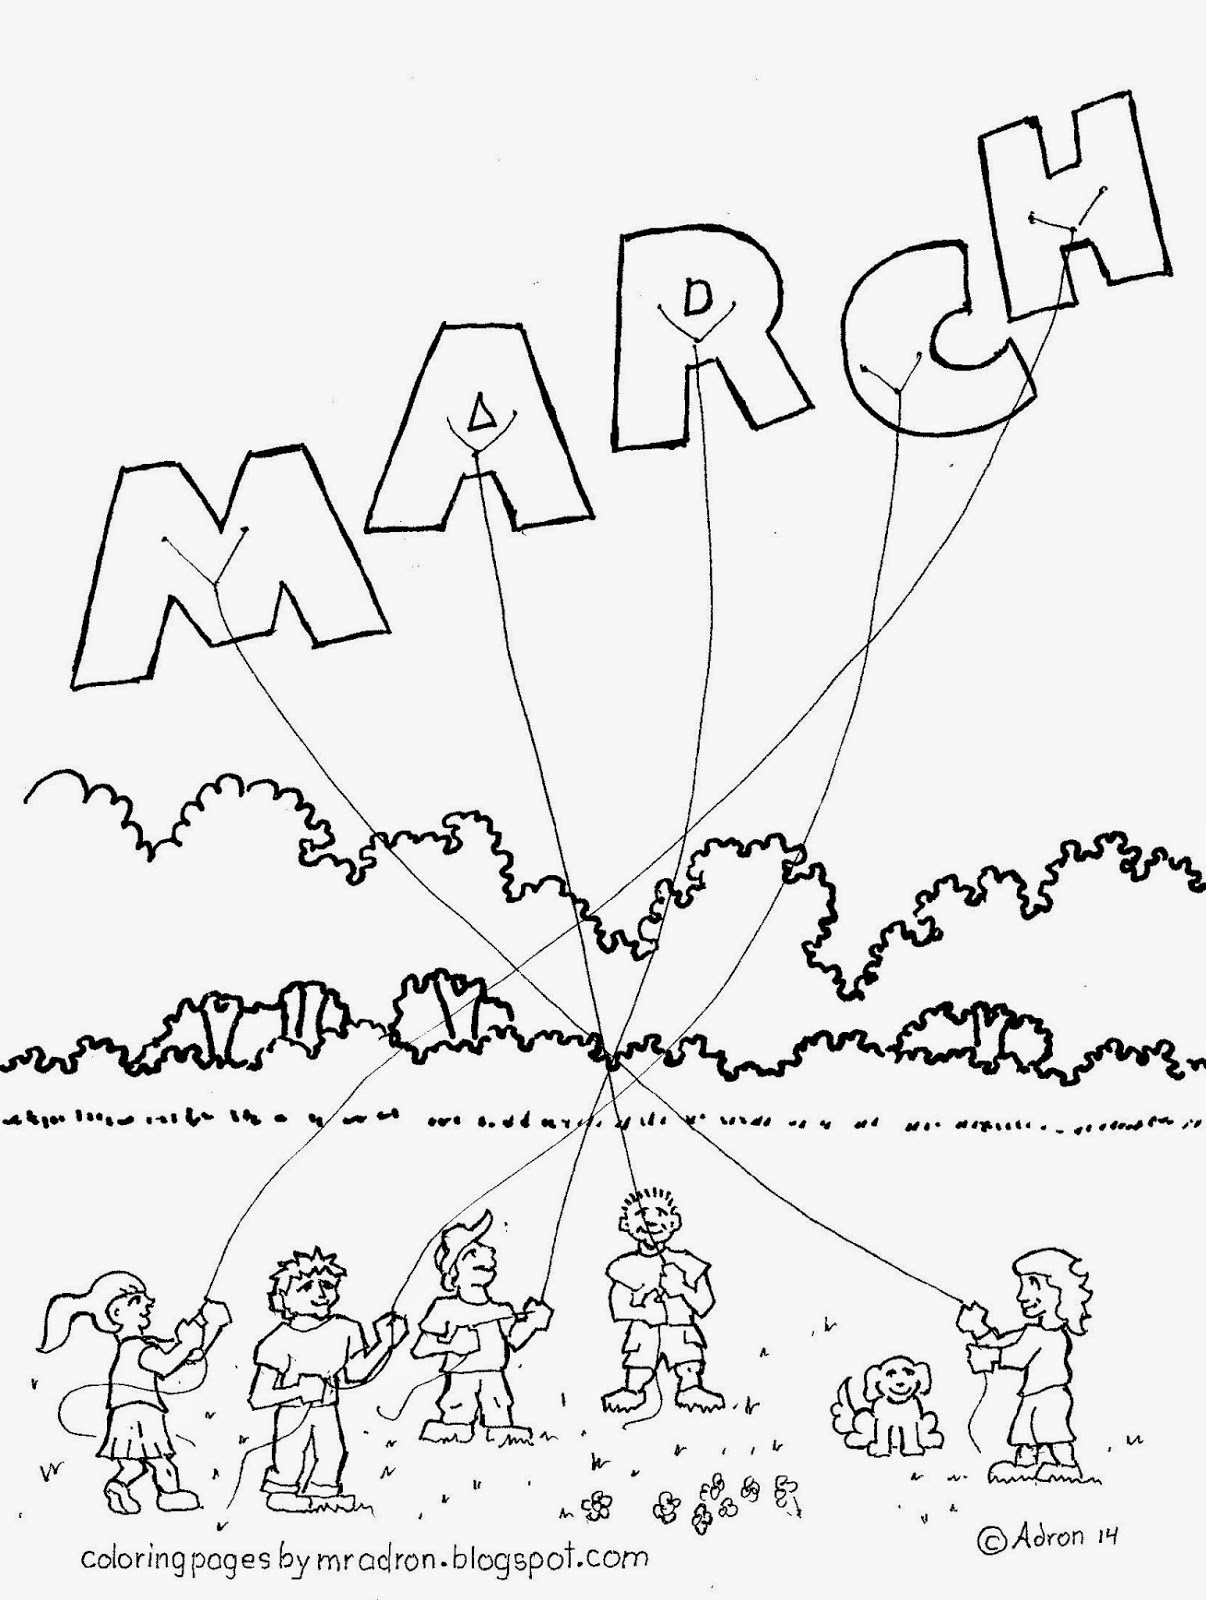 An illustration of the Month of March to print and color.